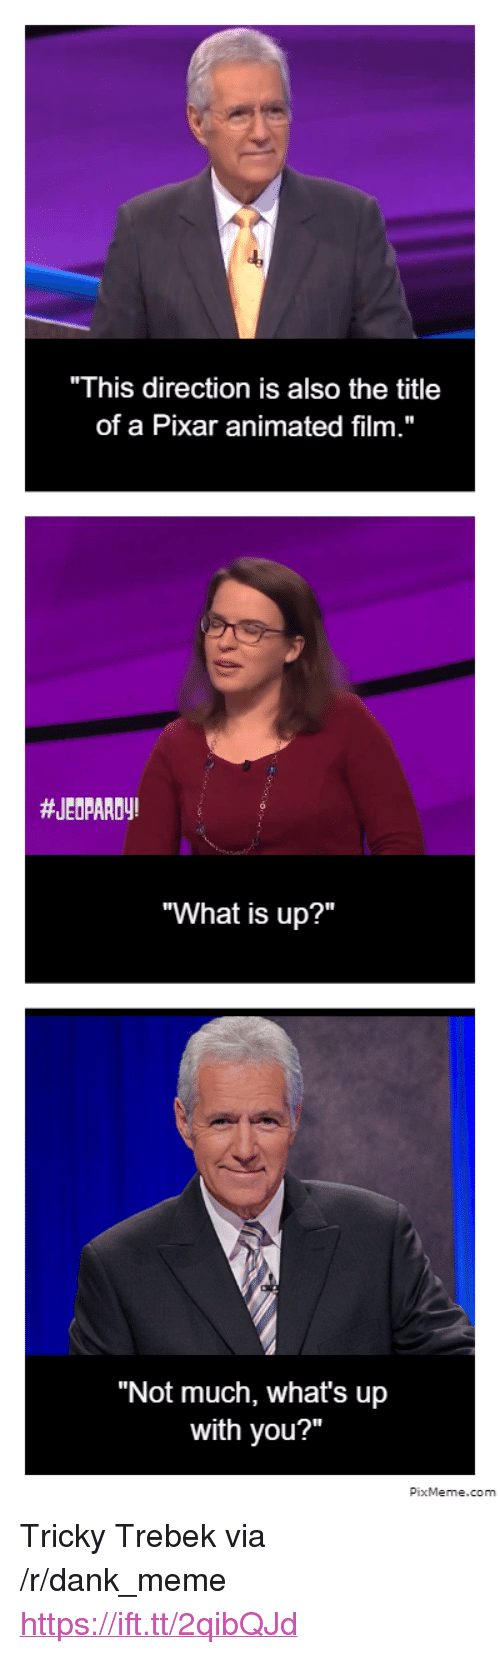 "Dank, Jeopardy, and Meme: ""This direction is also the title  of a Pixar animated film.""  #JEOPARDy!  ""What is up?""  ""Not much, what's up  with you?""  PixMeme.com <p>Tricky Trebek via /r/dank_meme <a href=""https://ift.tt/2qibQJd"">https://ift.tt/2qibQJd</a></p>"